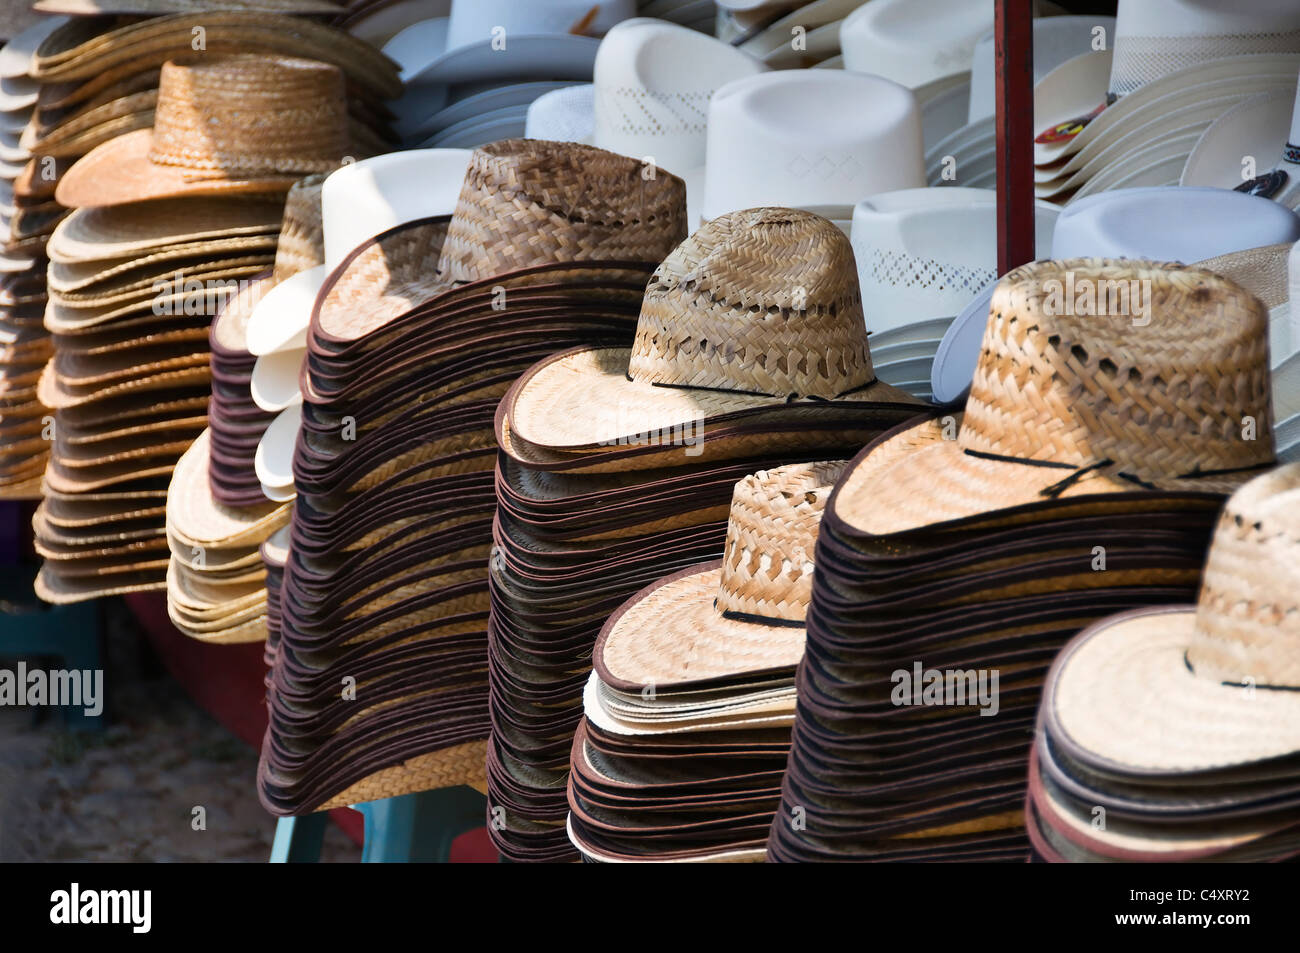 3f7cf5d7ba8d29 A variety of hats are stacked for sale at this outdoor market stall in  Talpa de